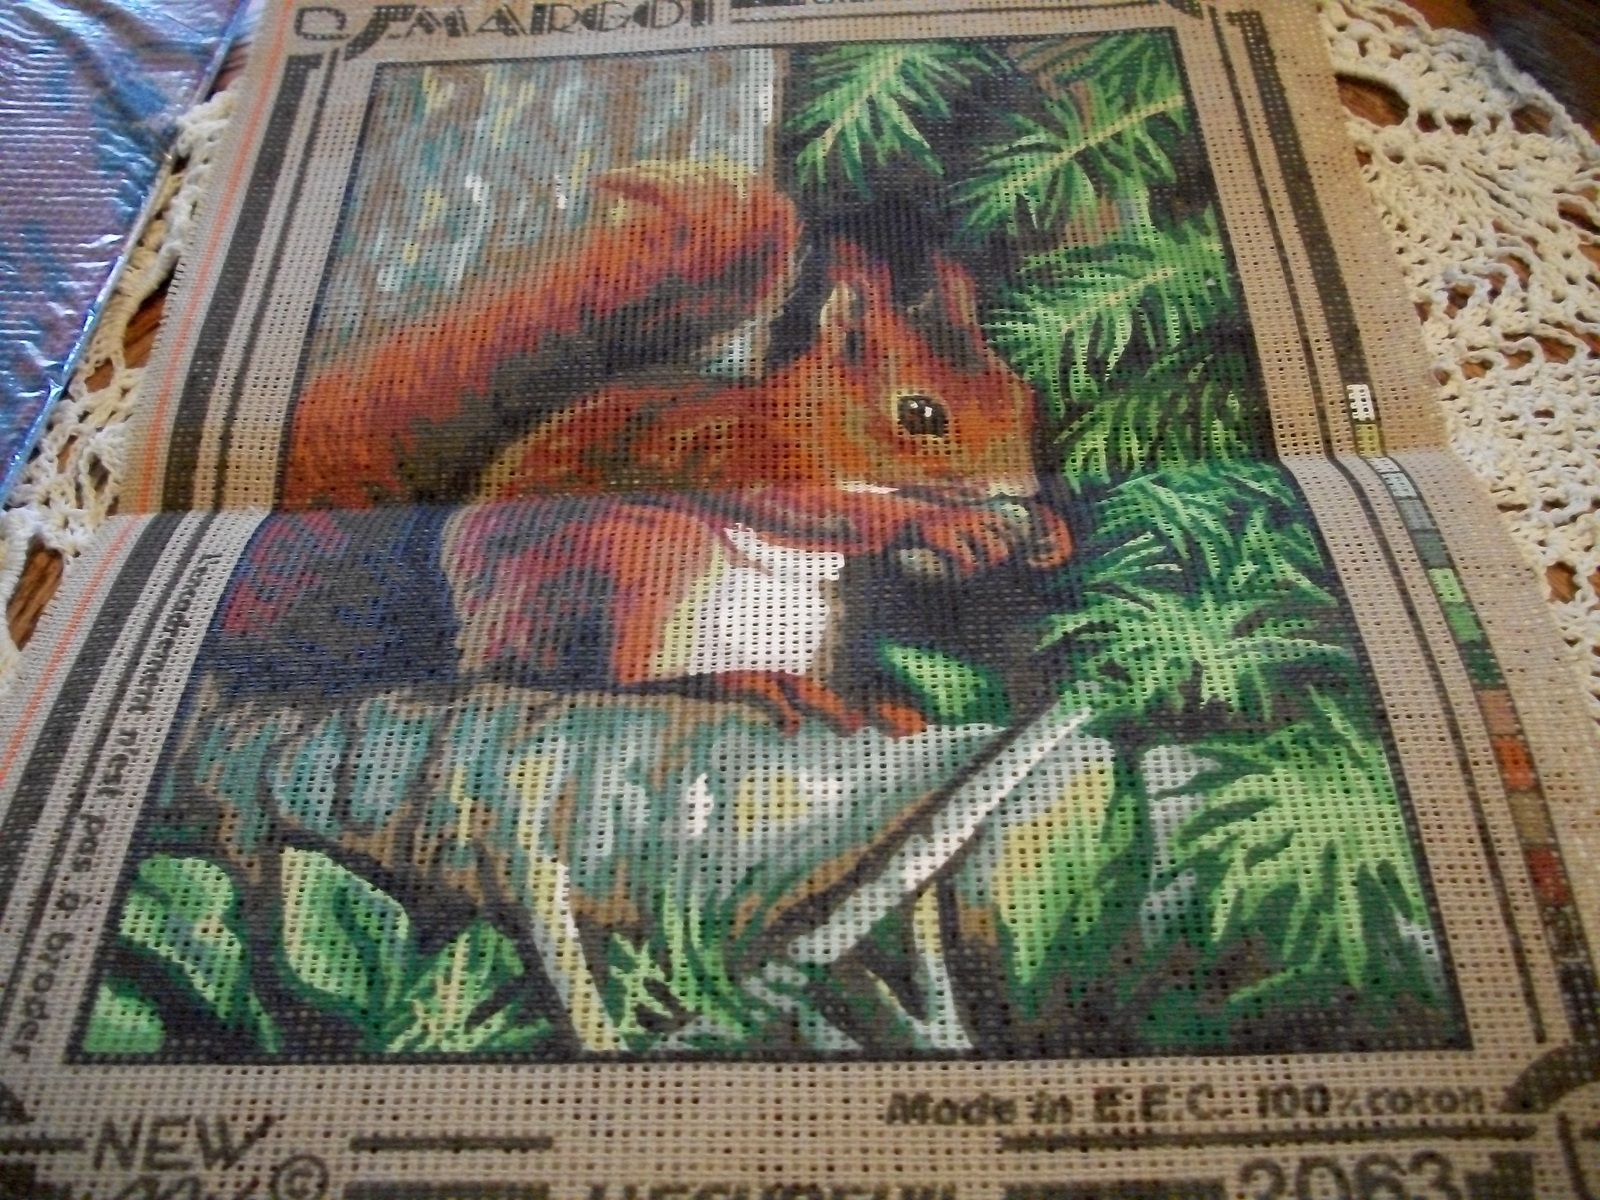 Primary image for Margot Creations of Paris~Squirrel Needlepoint Canvas Pattern 2063